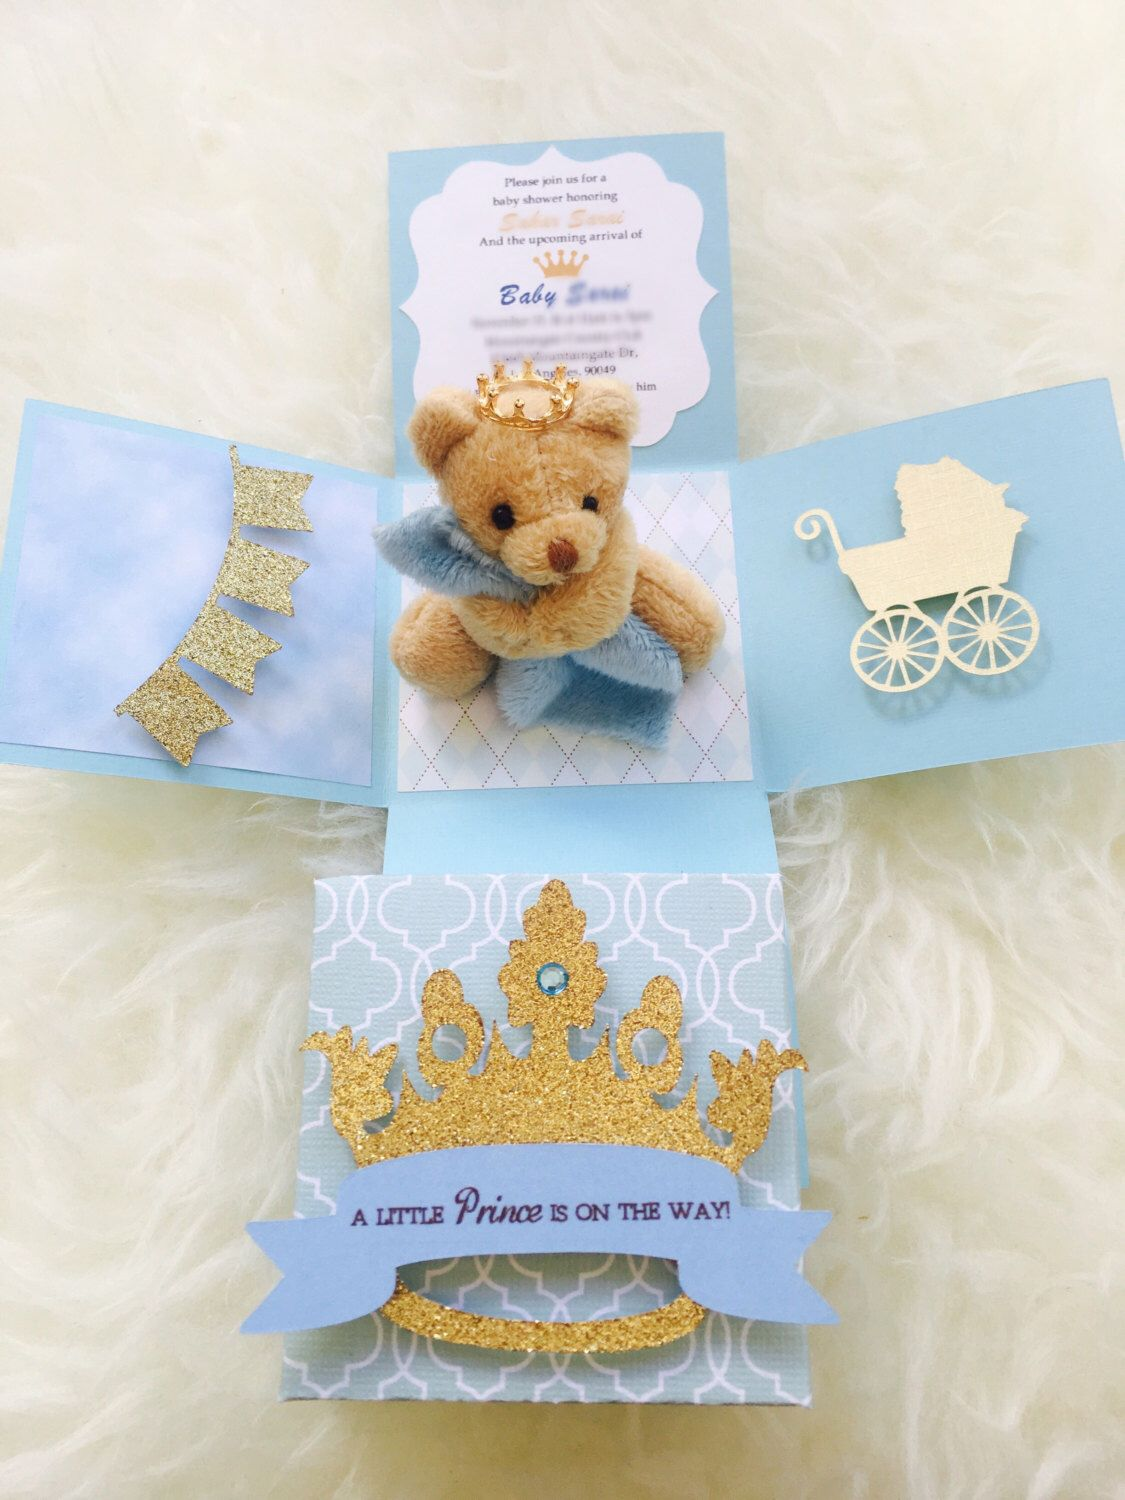 Pin By Yailin Mellette On Baby Shower Invitations In 2019